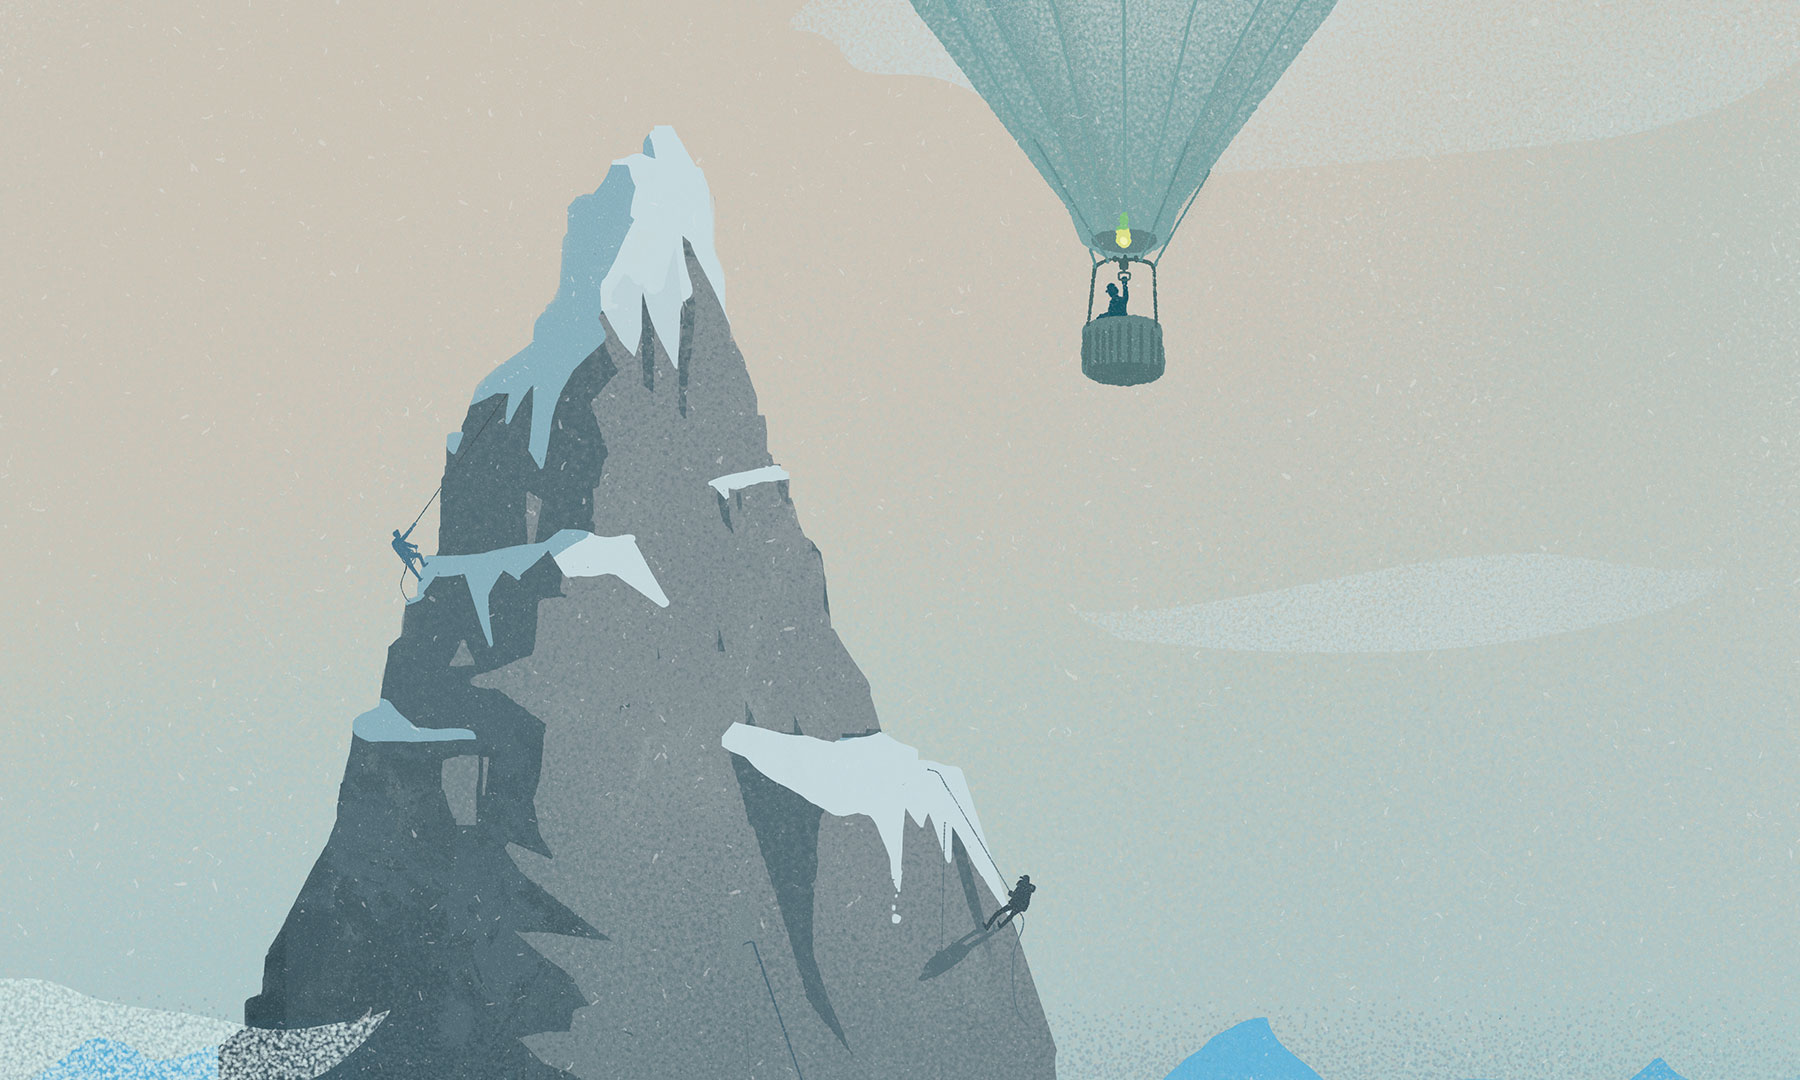 What is white privilege really, Article, Feature, TT60, Magazine, Illustration, Hot air balloon, Mountain, Climbing, Inequity